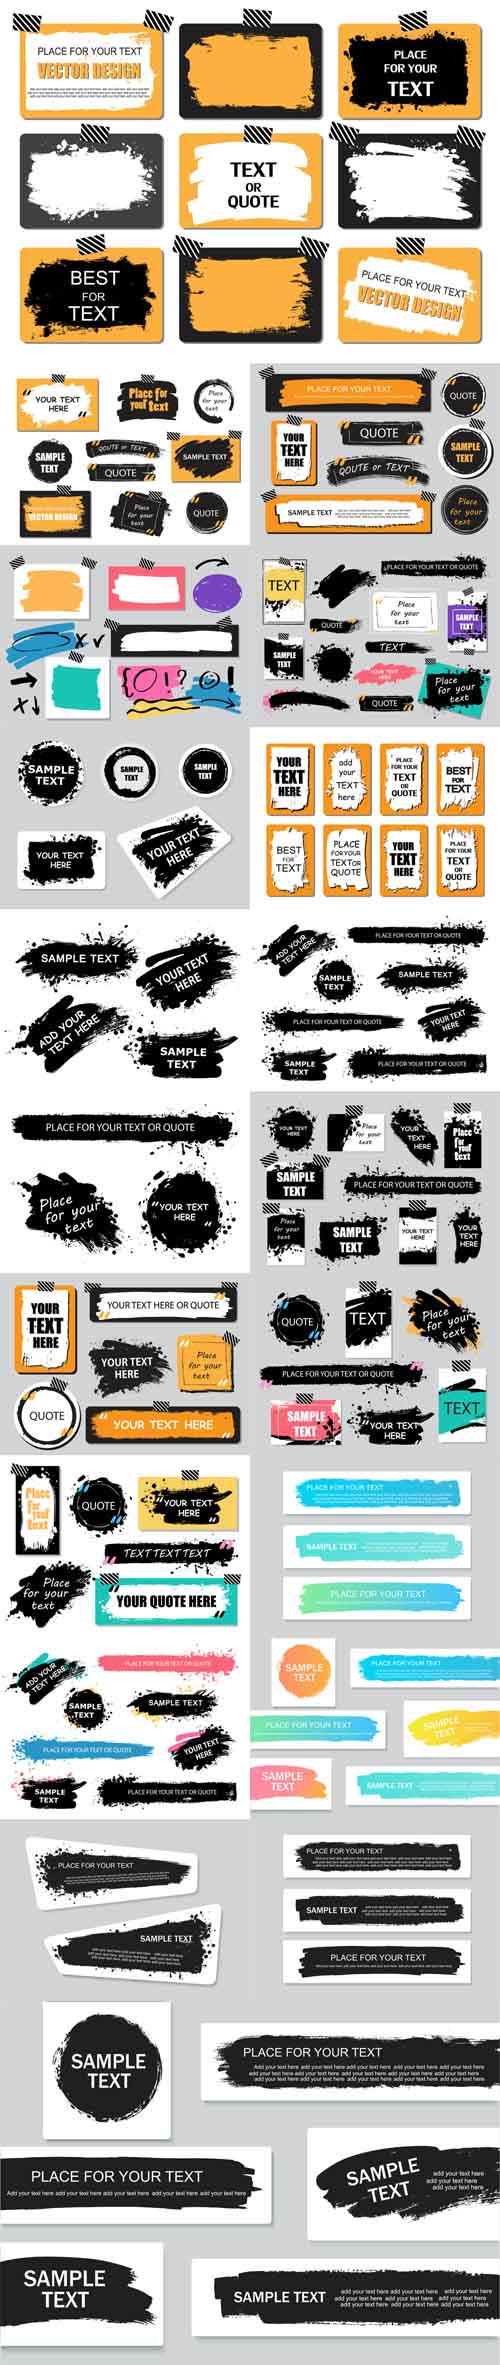 Vector Quote or Text Boxes Collection. Hand Drawn Frames Square Rectangle and Round Shapes